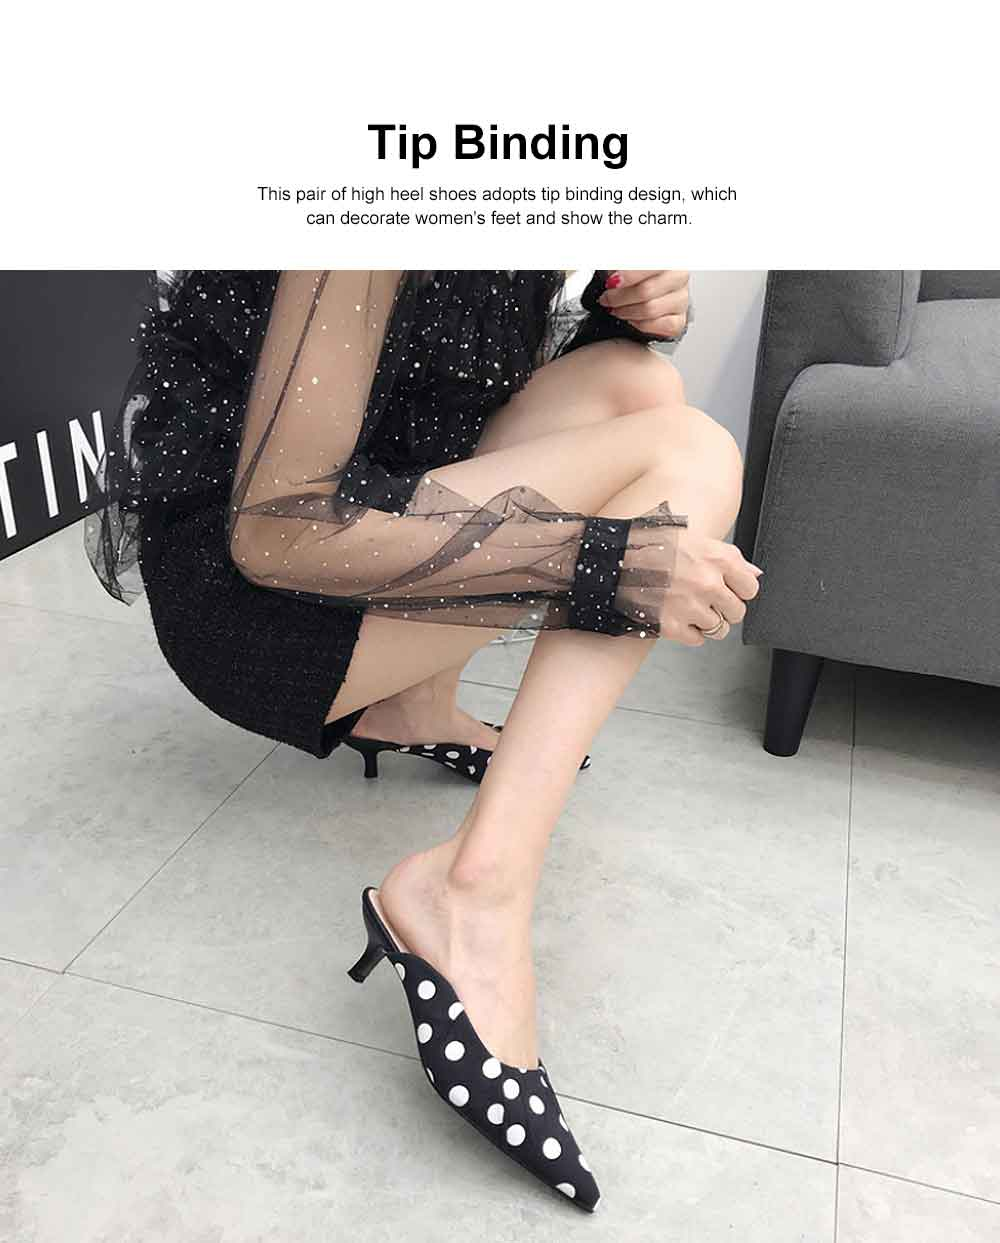 2019 New High Heel Sandals for Women Fashion Pleated Dots Sexy Kitten Heels Tip Binding Slipper Pointed Shoes 2